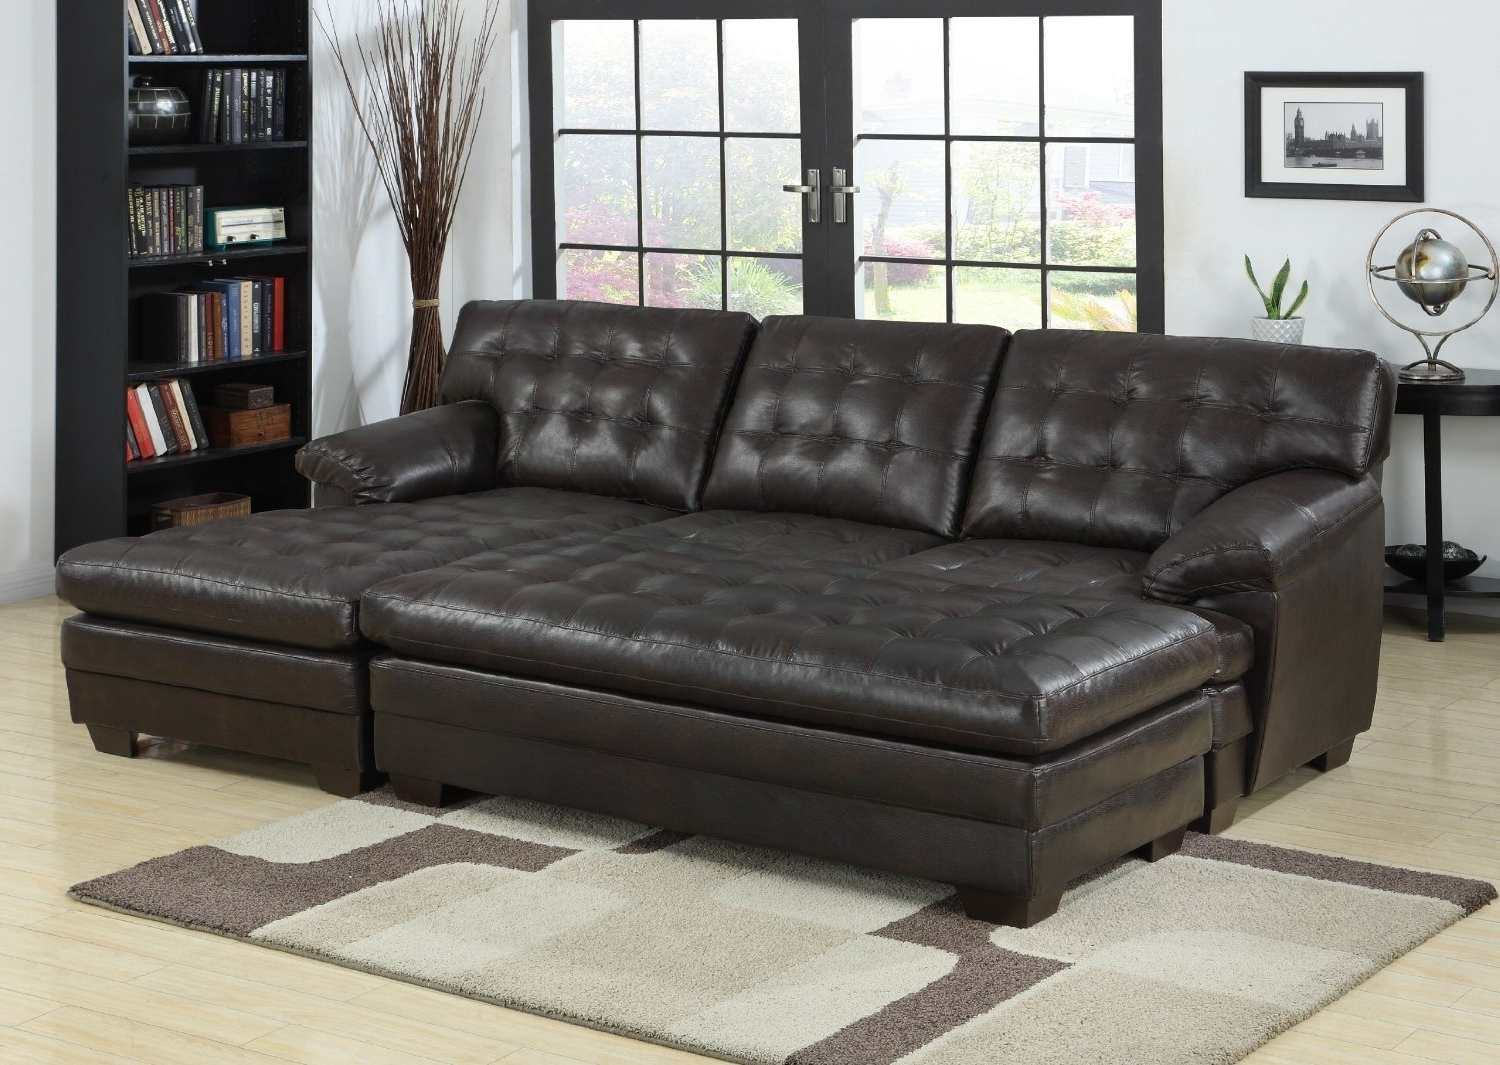 Newest Living Room : Leather Chaise Lounge Wicker Chaise Lounge Small Pertaining To Wide Chaise Lounges (View 15 of 15)